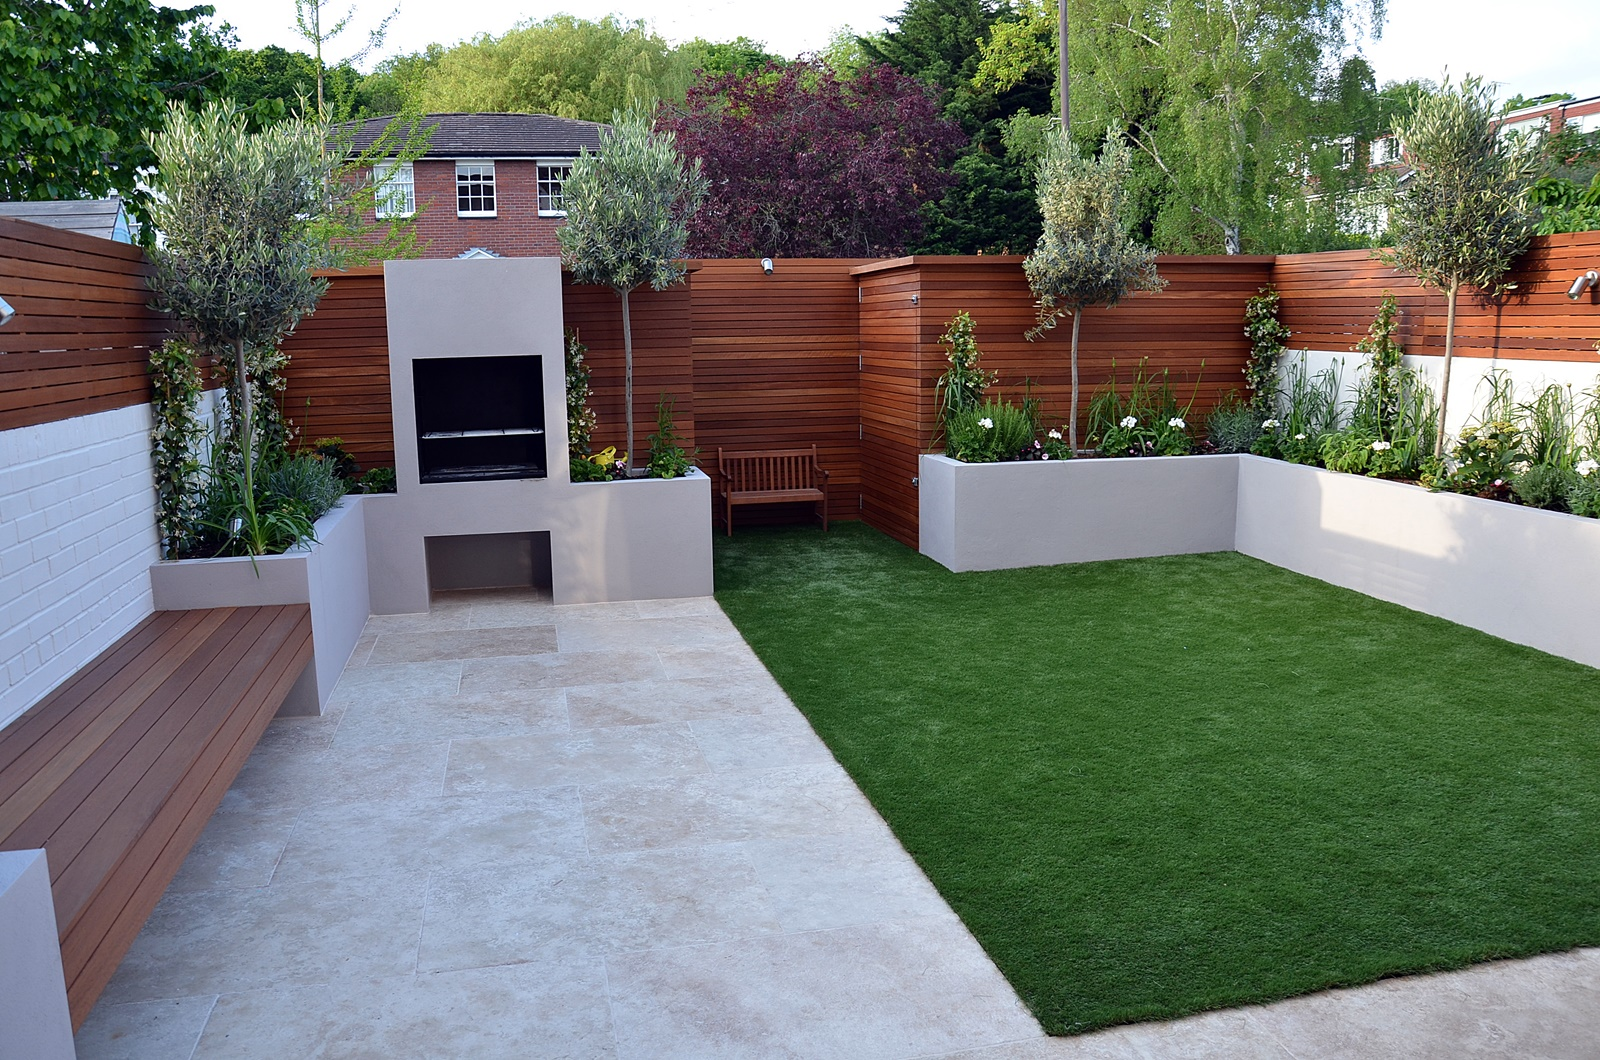 Modern garden design fulham chelsea clapham battersea for Backyard design ideas